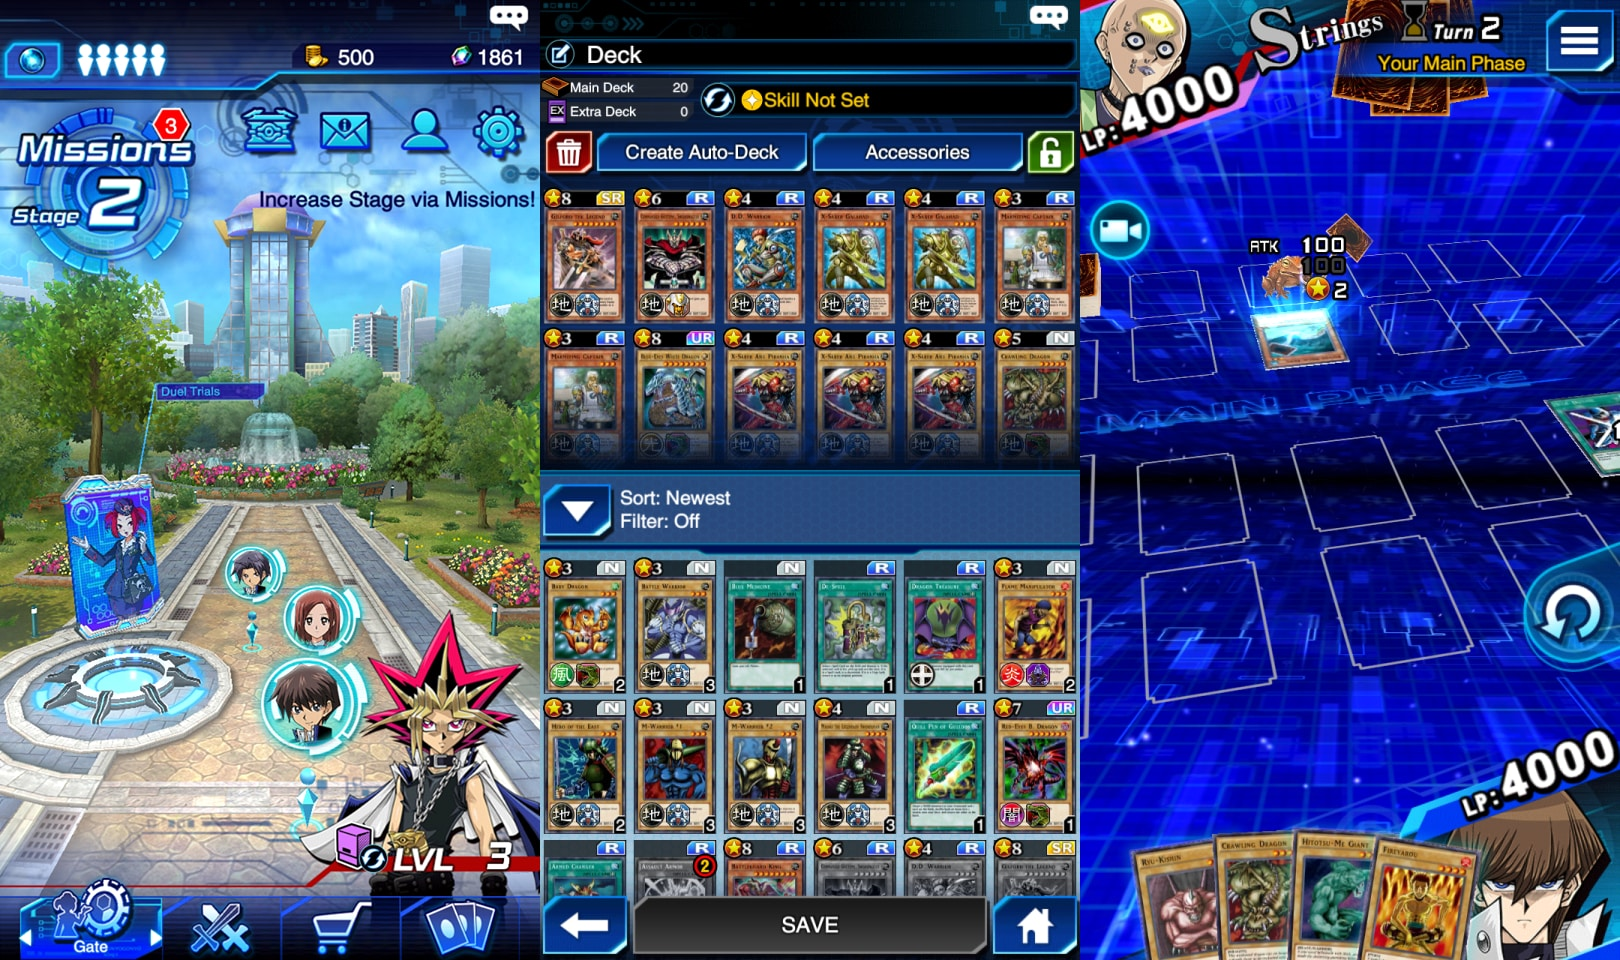 Yu-Gi-Oh! Duel Links, iOS & Android Collectible Card Game (image by @XReaction)